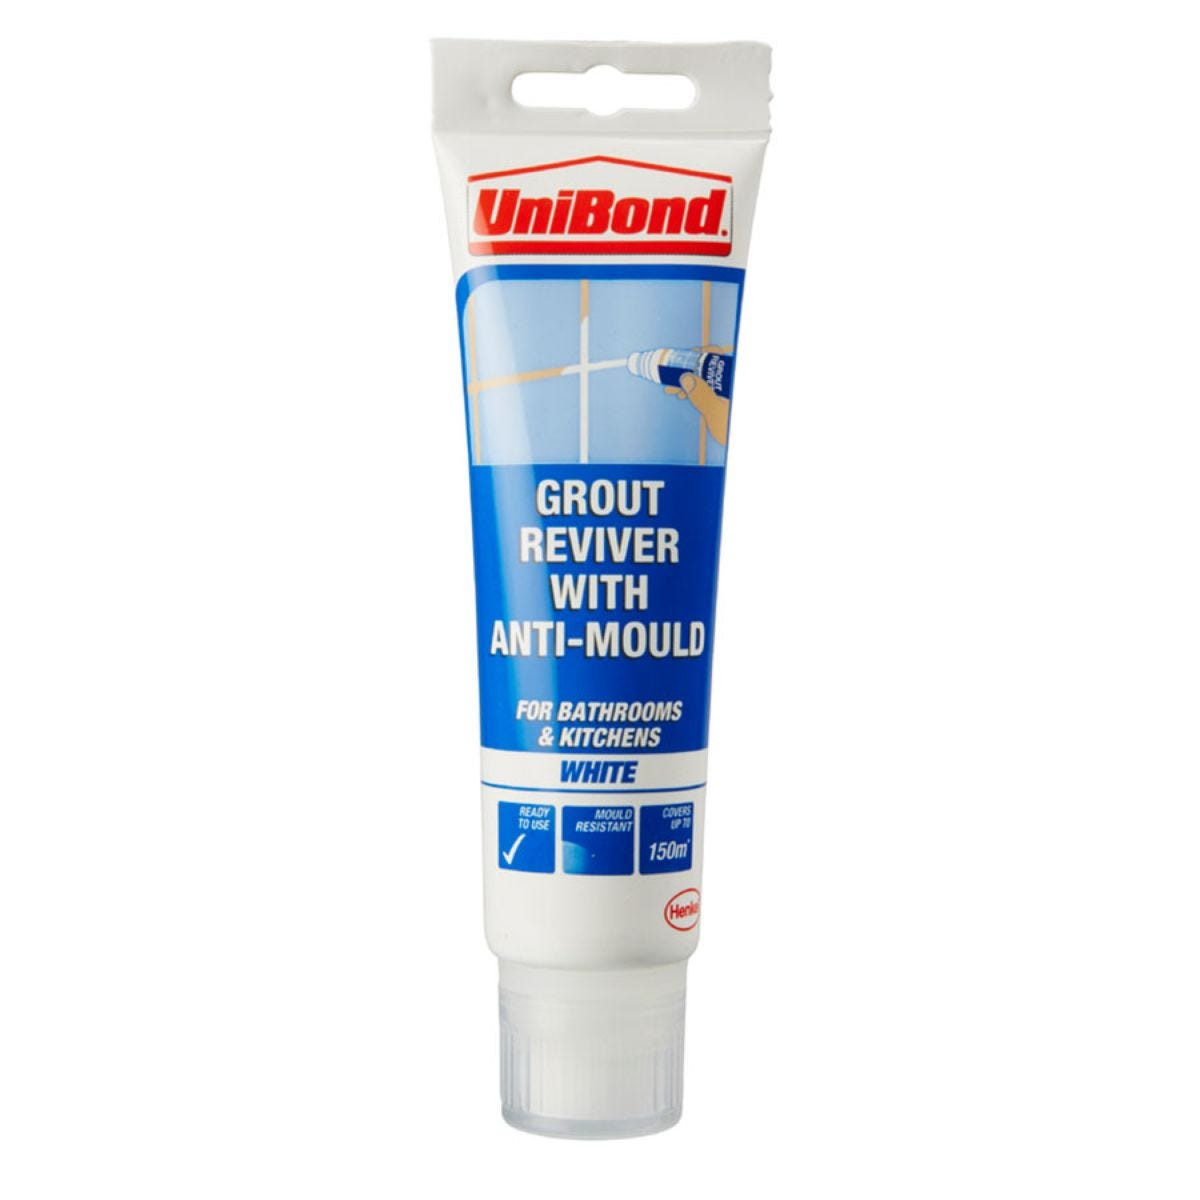 Unibond Grout Reviver White 125ml